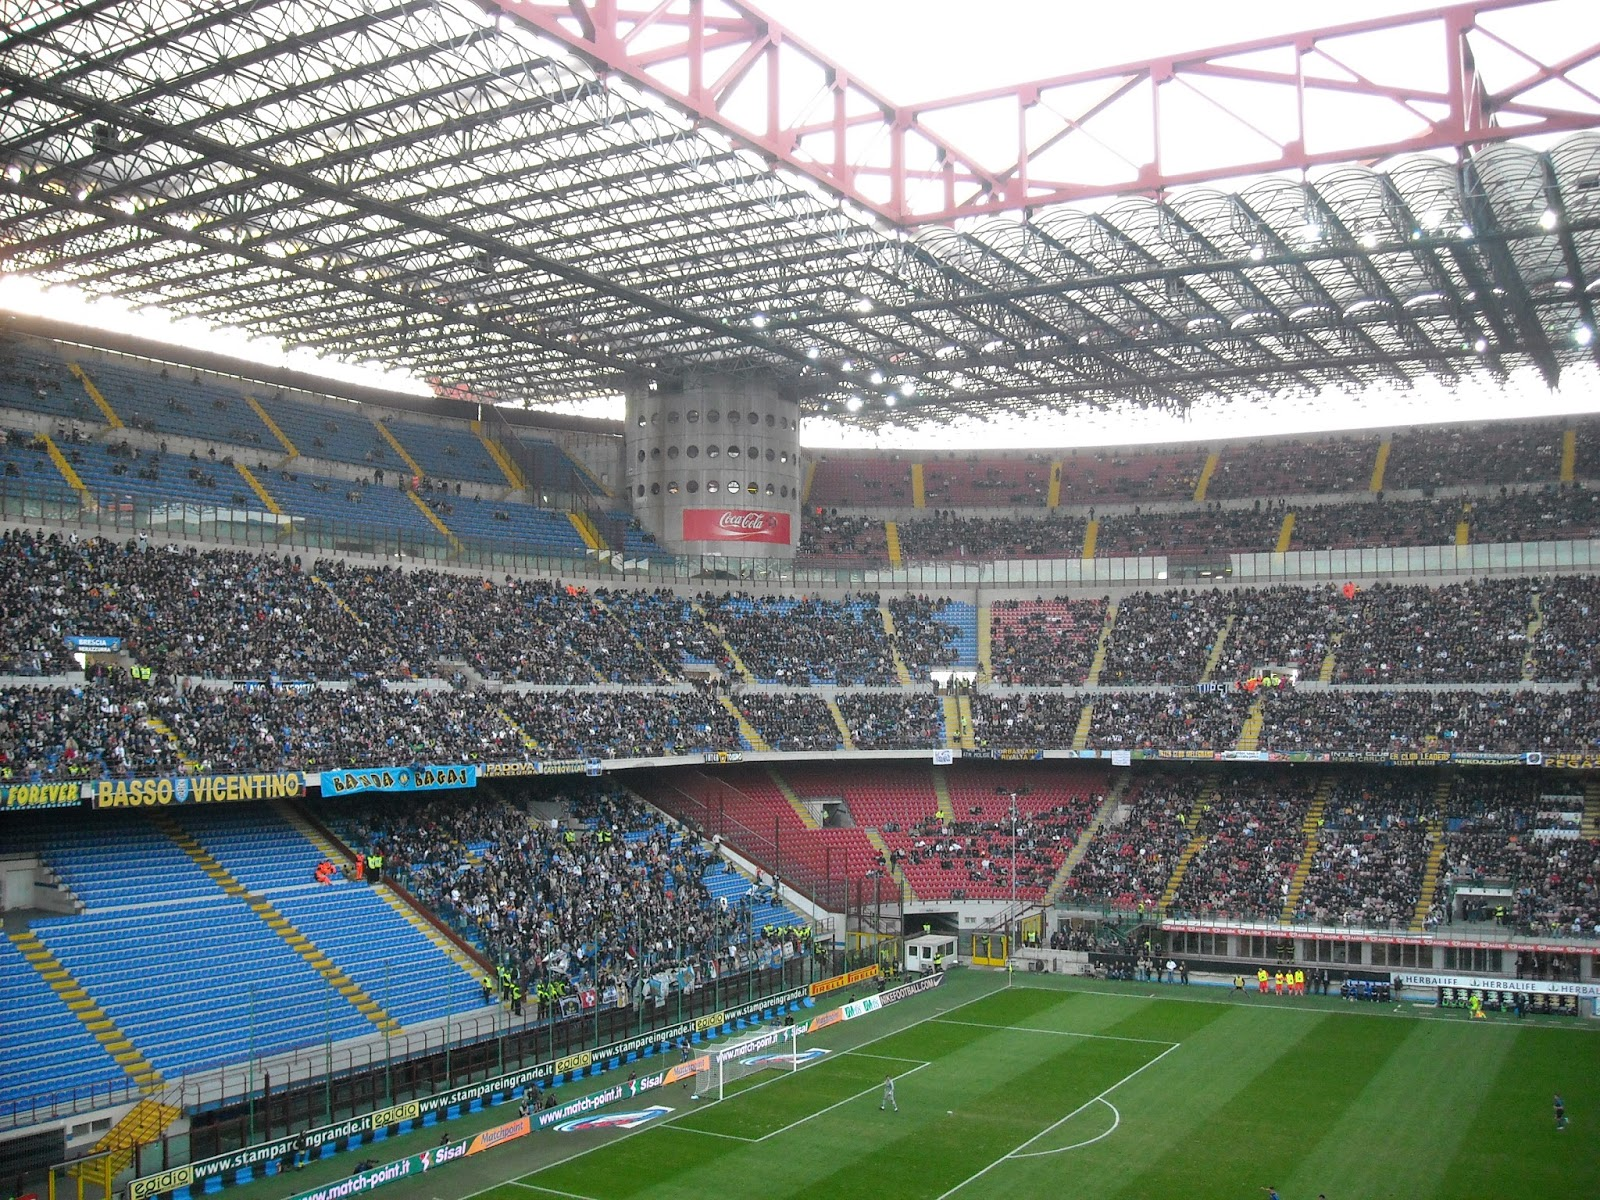 k 525 san siro milan - photo#19